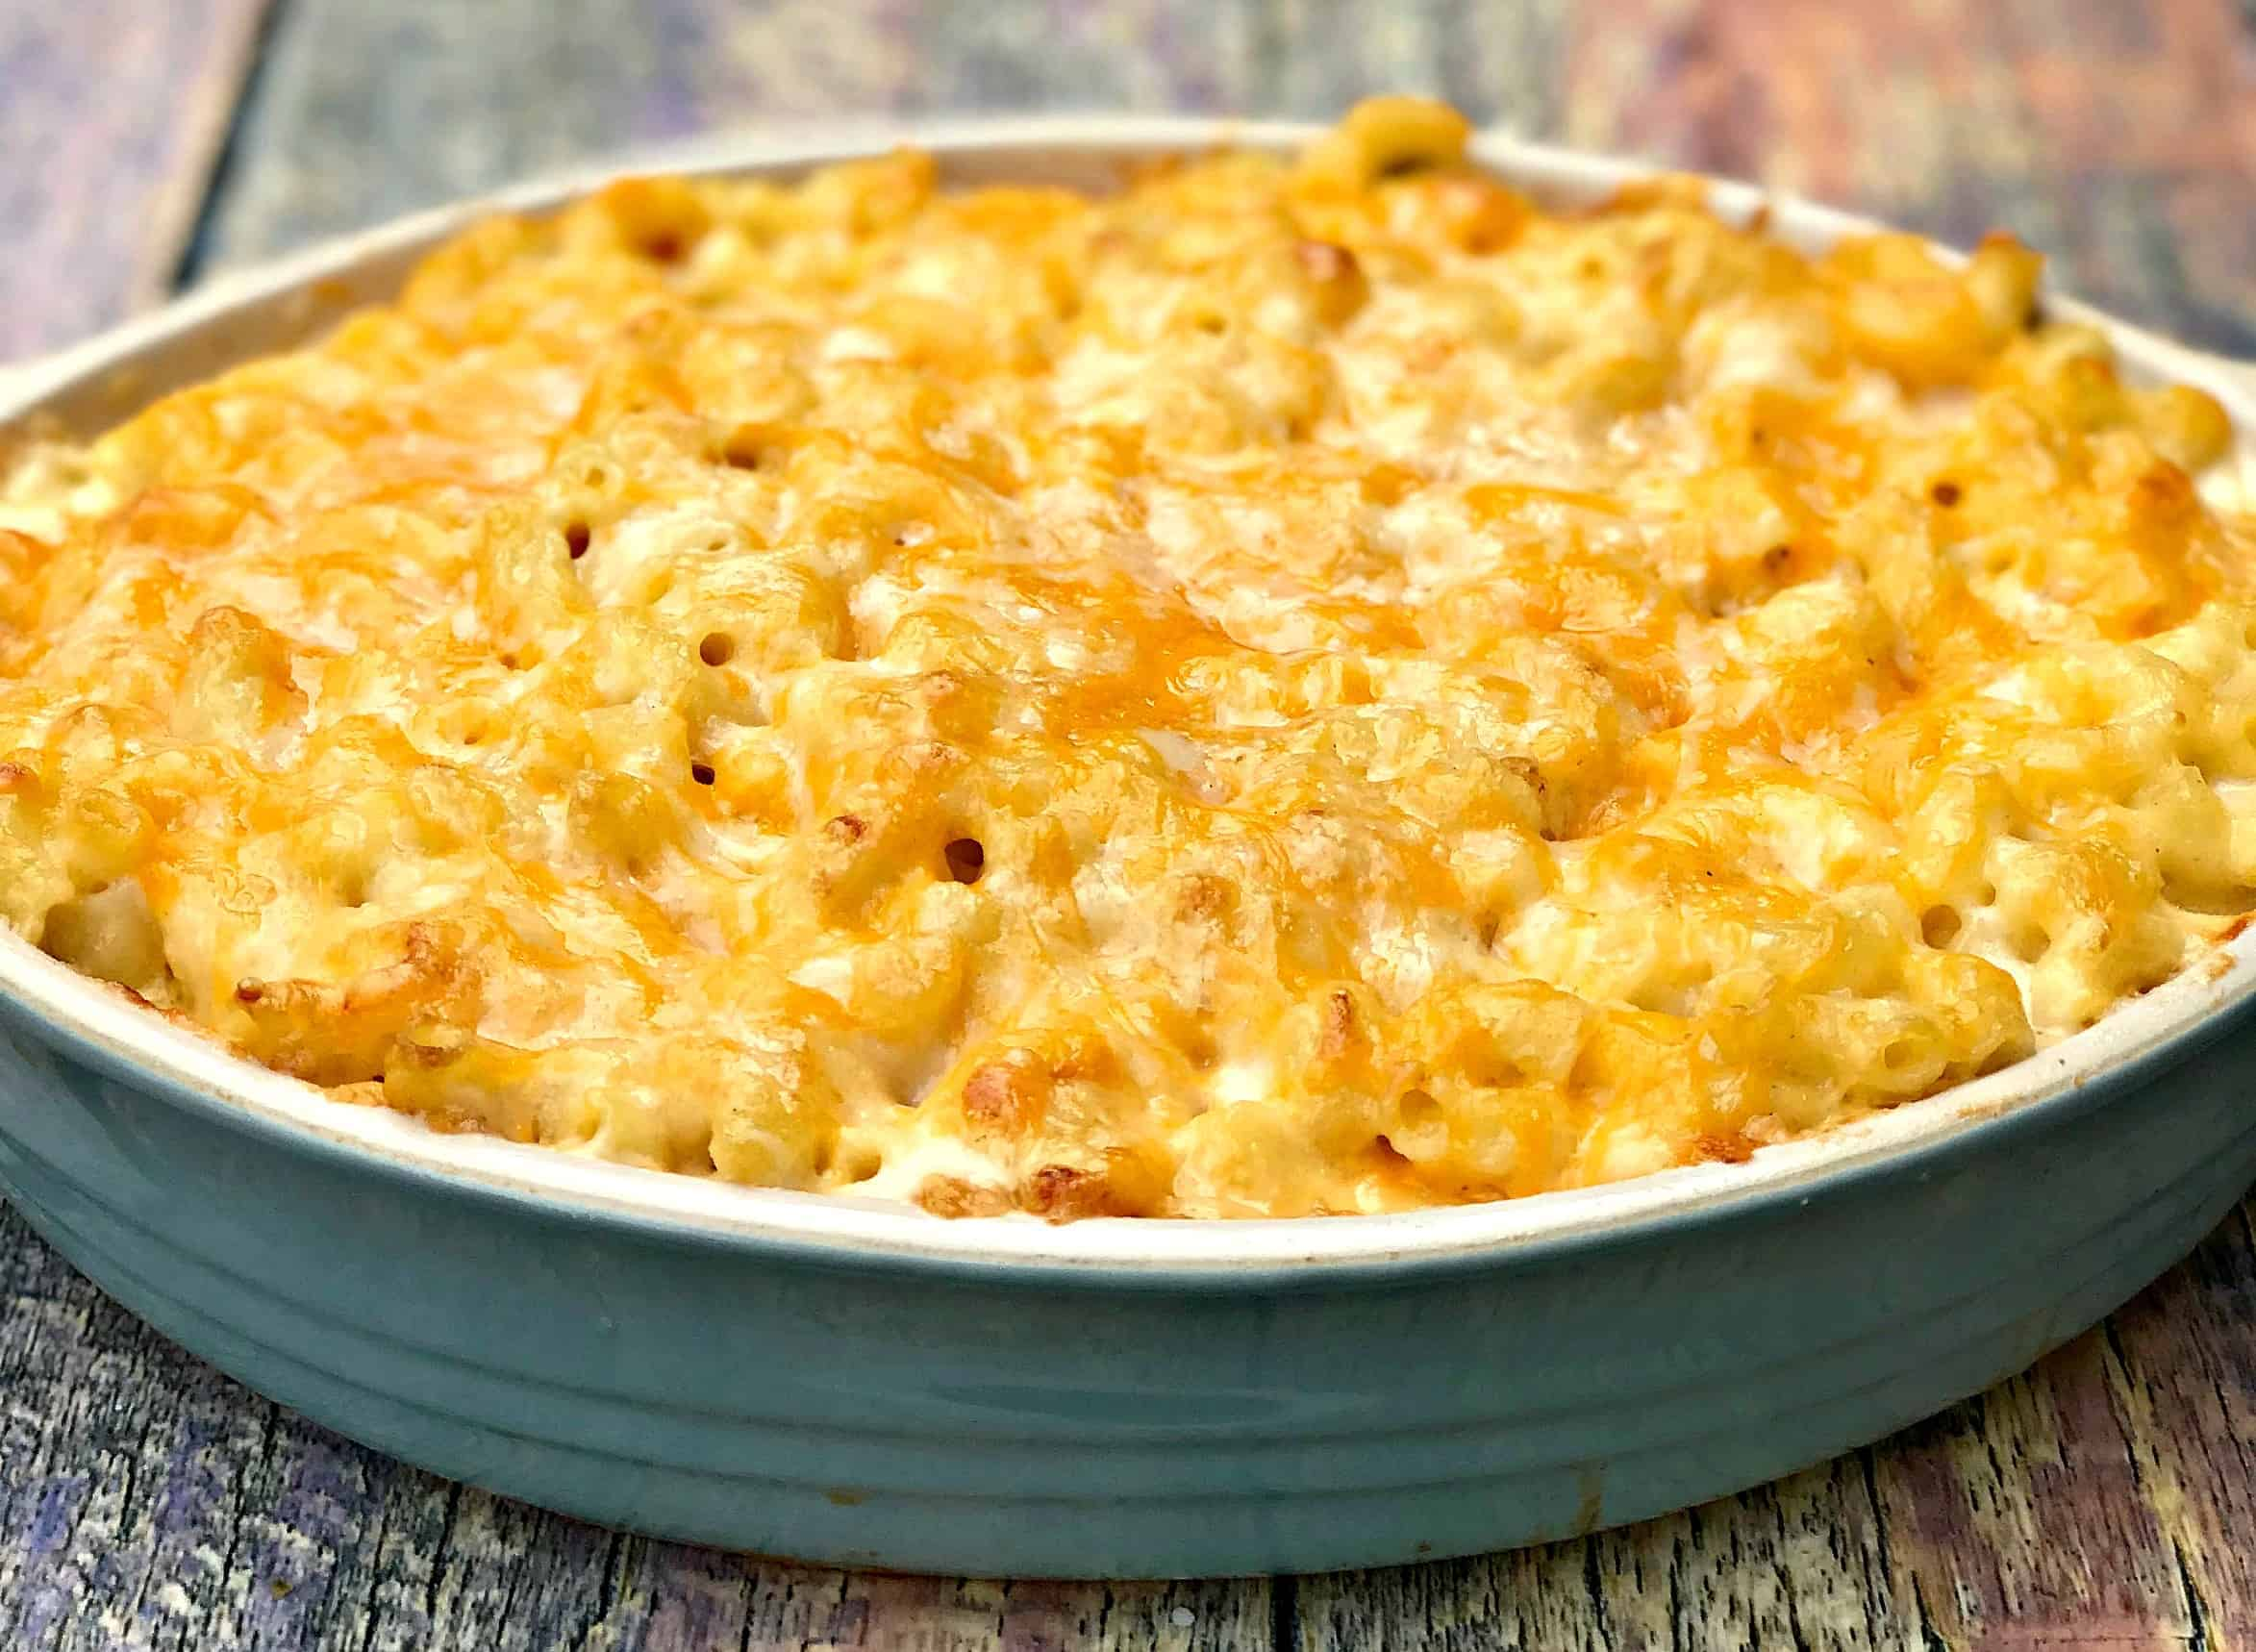 southern style baked macaroni and cheese in a baking dish